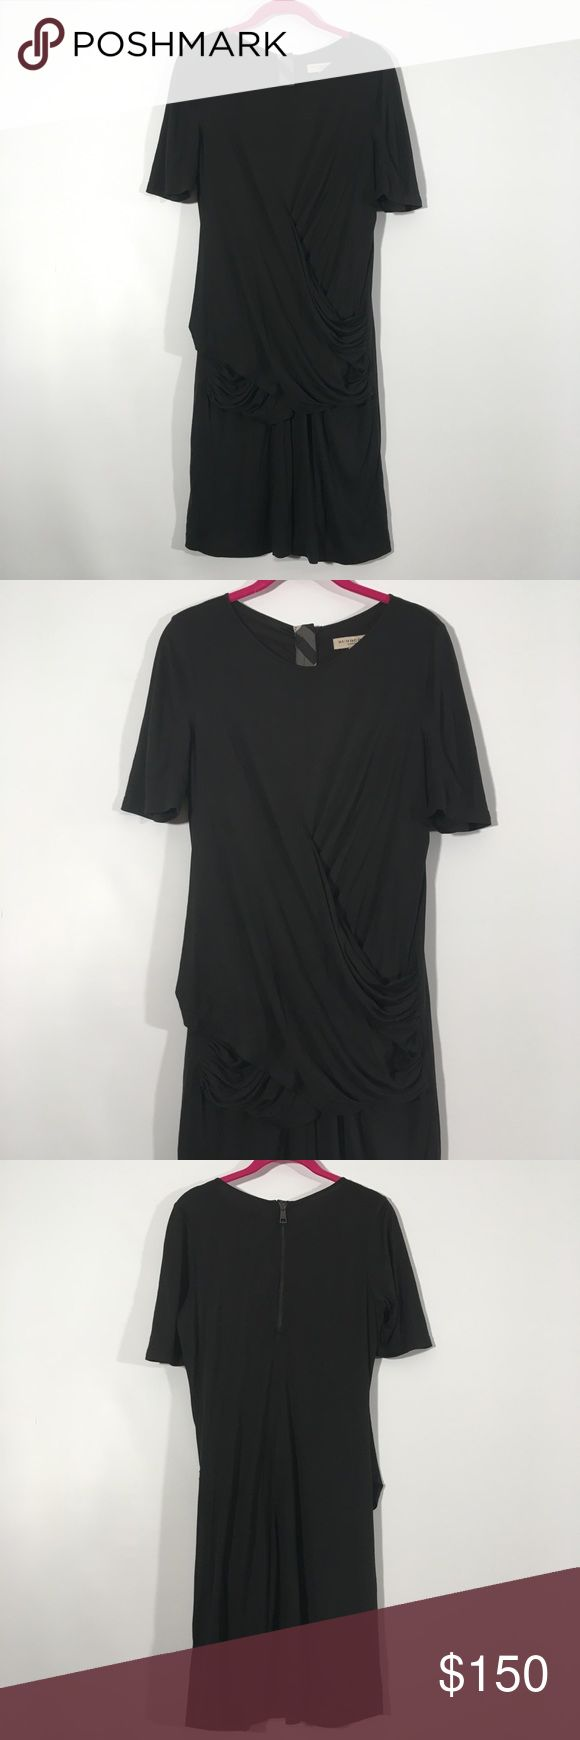 Burberry London Black Drape Casual Tee Dress M Spandexy material that fits near the body. Zips in the back. Drop falls across hips. Similar draping to the two styles shown in stock photos. Burberry Dresses Midi